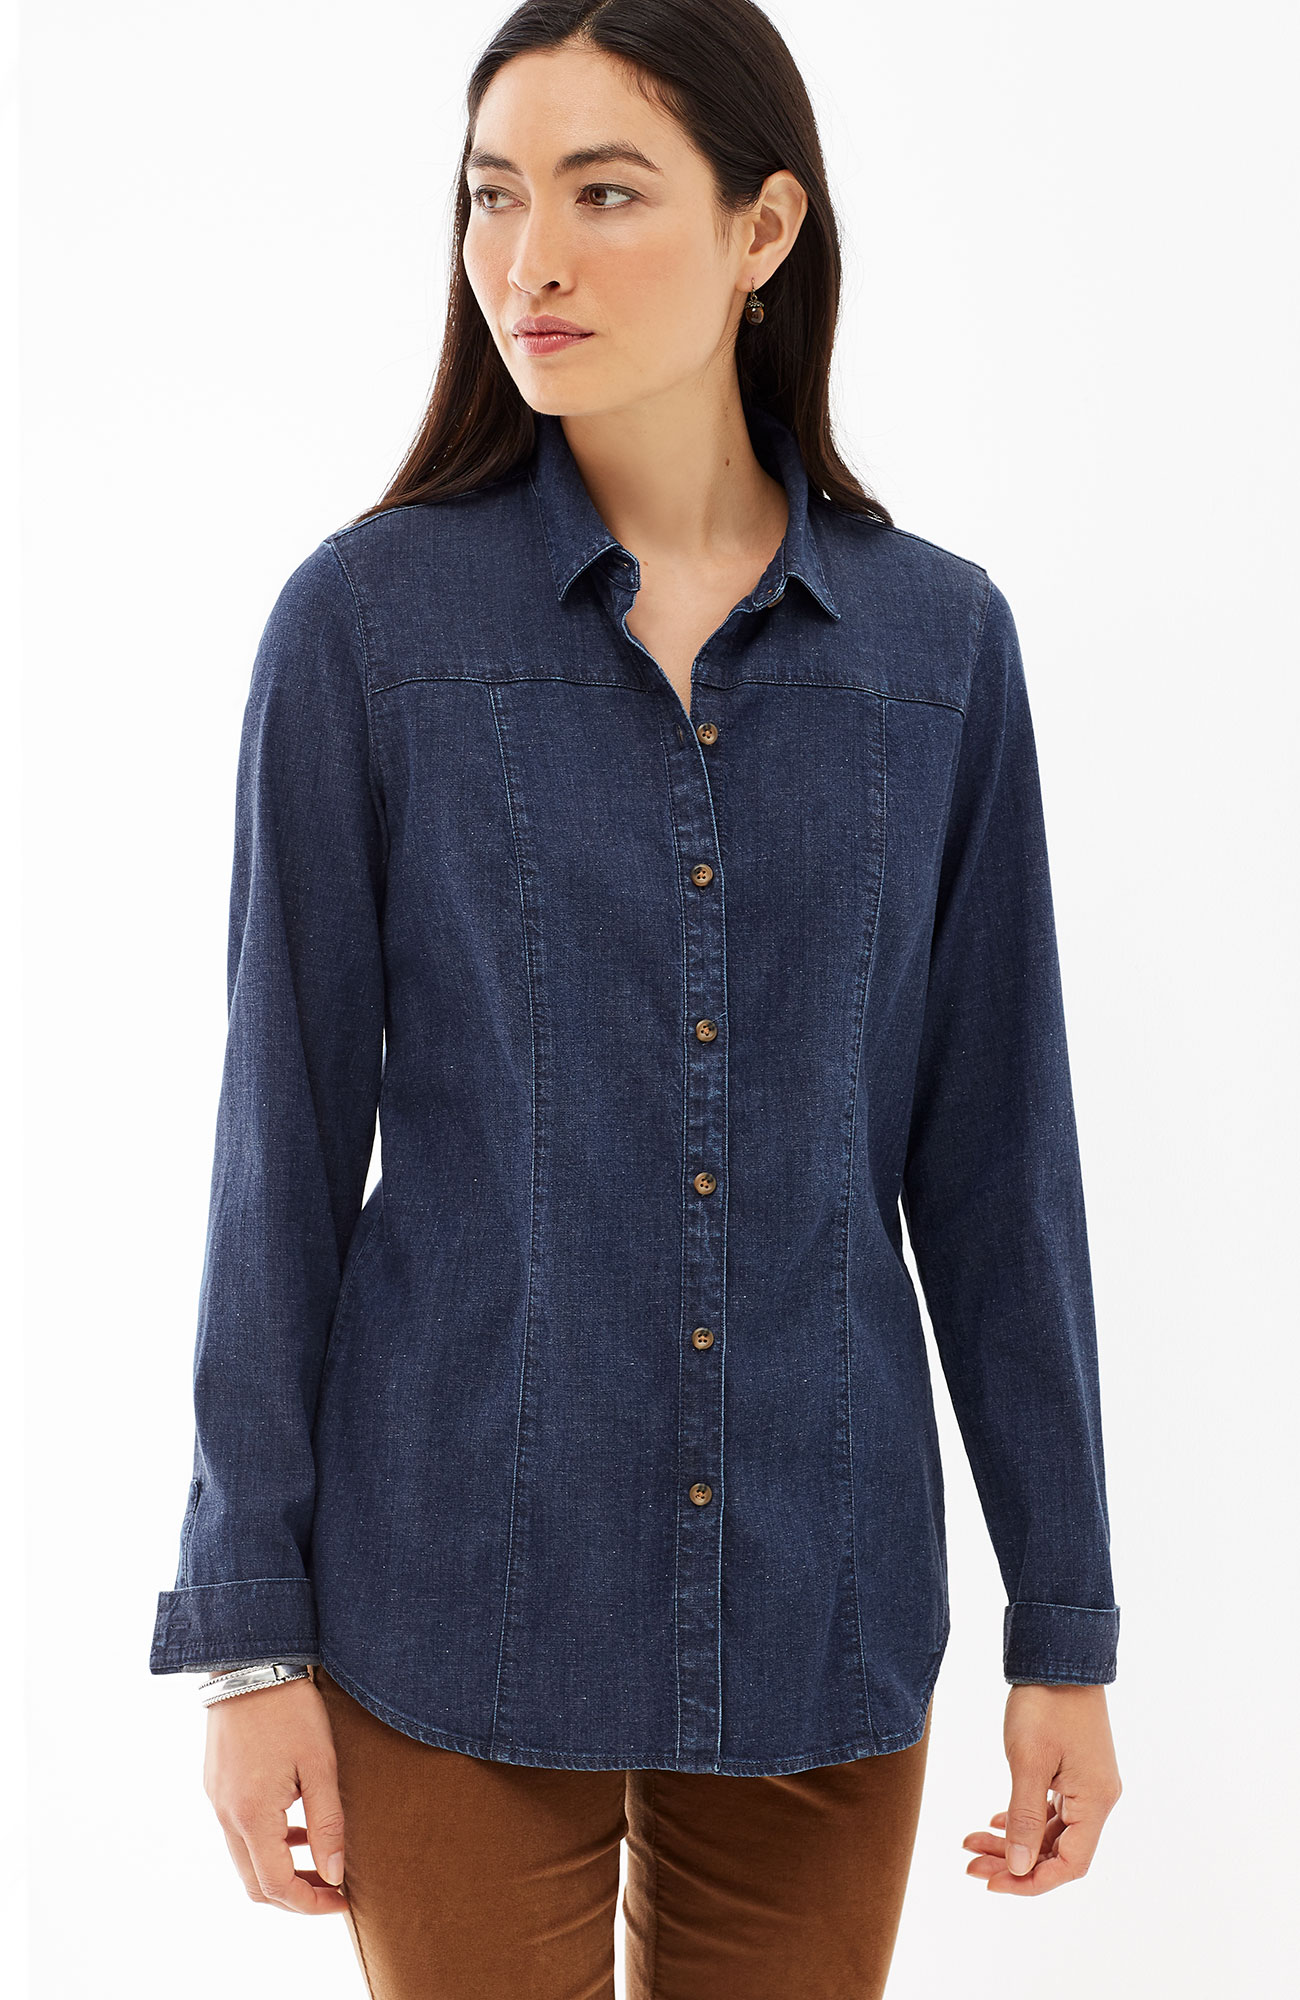 Tencel®-denim shirt